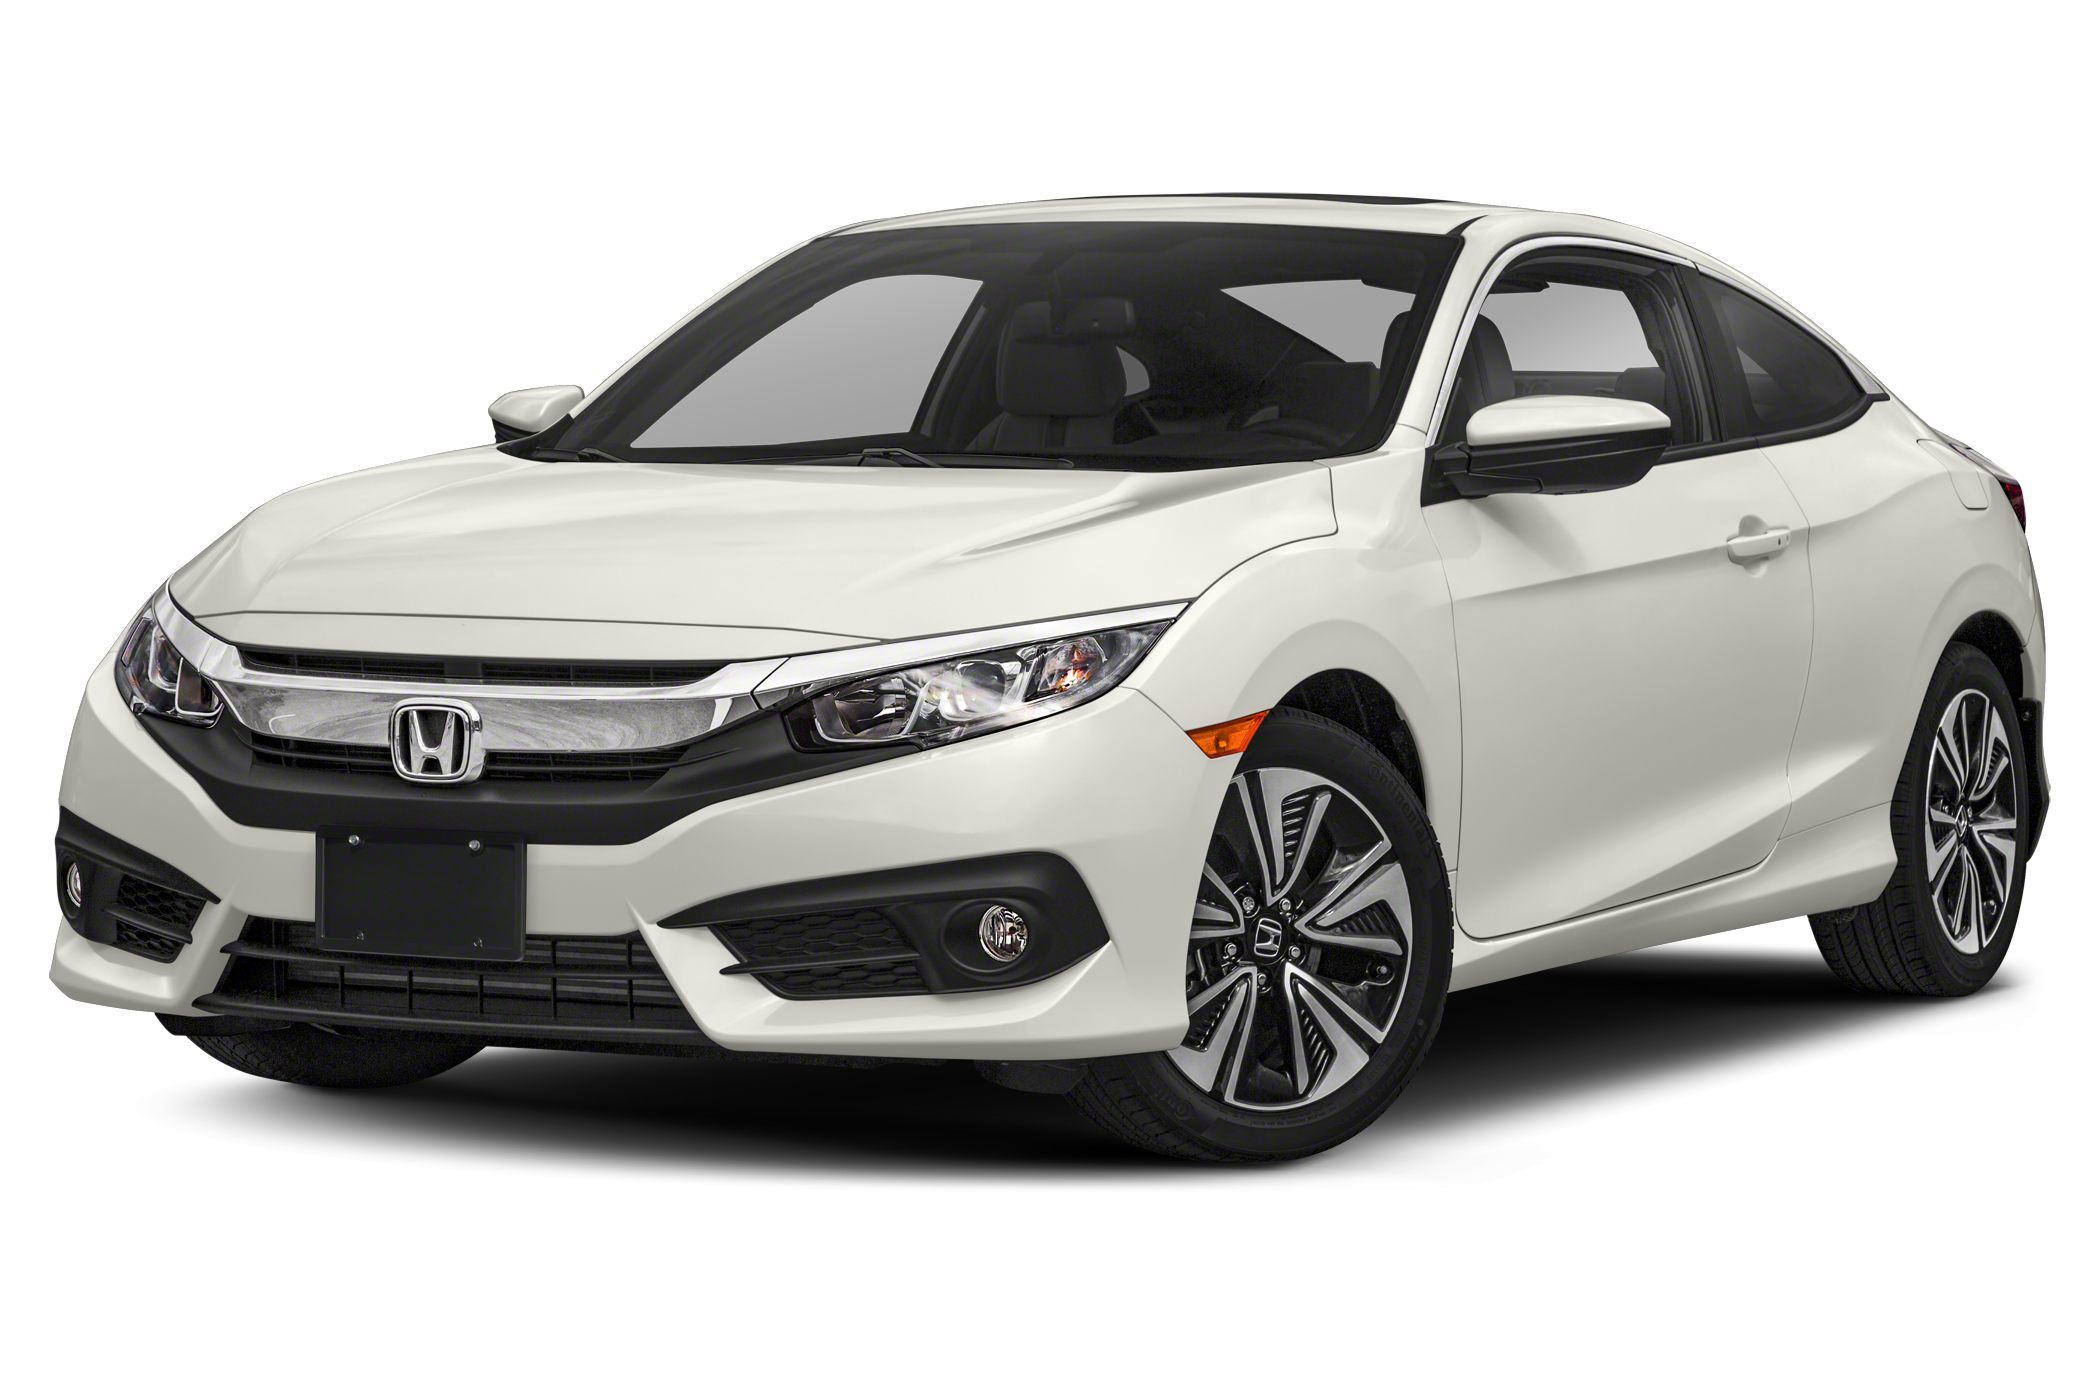 2018 Honda Civic EX-L 2dr Coupe